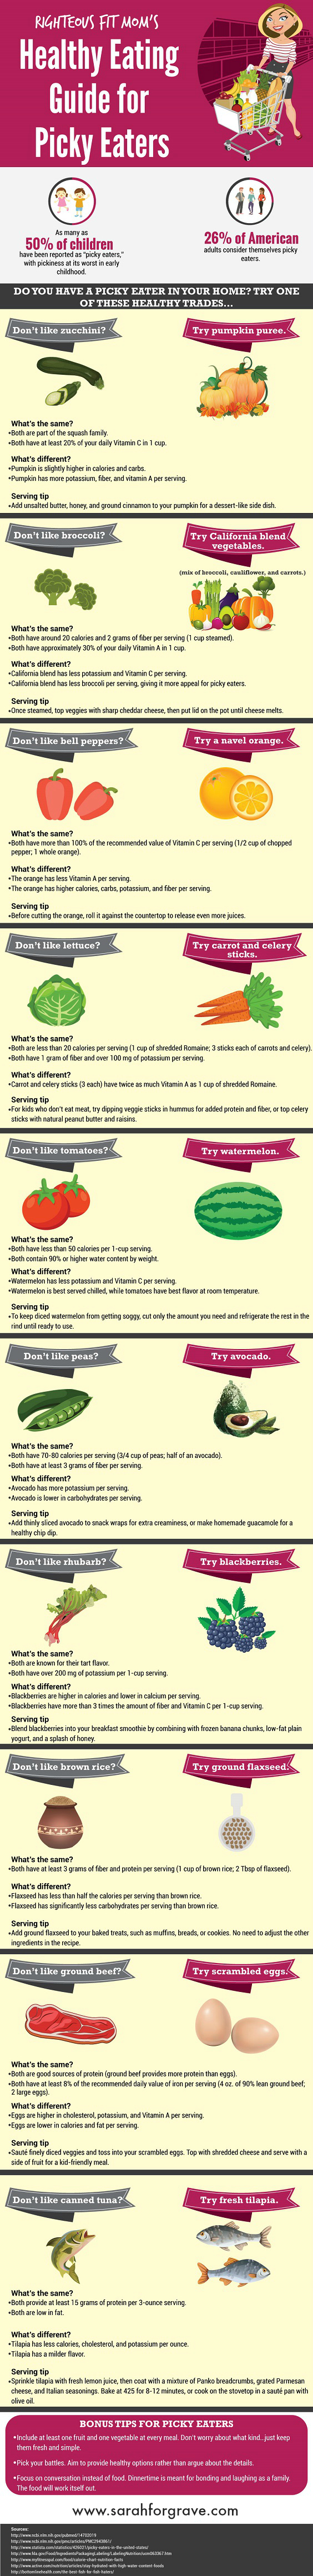 final_healthy-eating-guide-for-picky-eaters